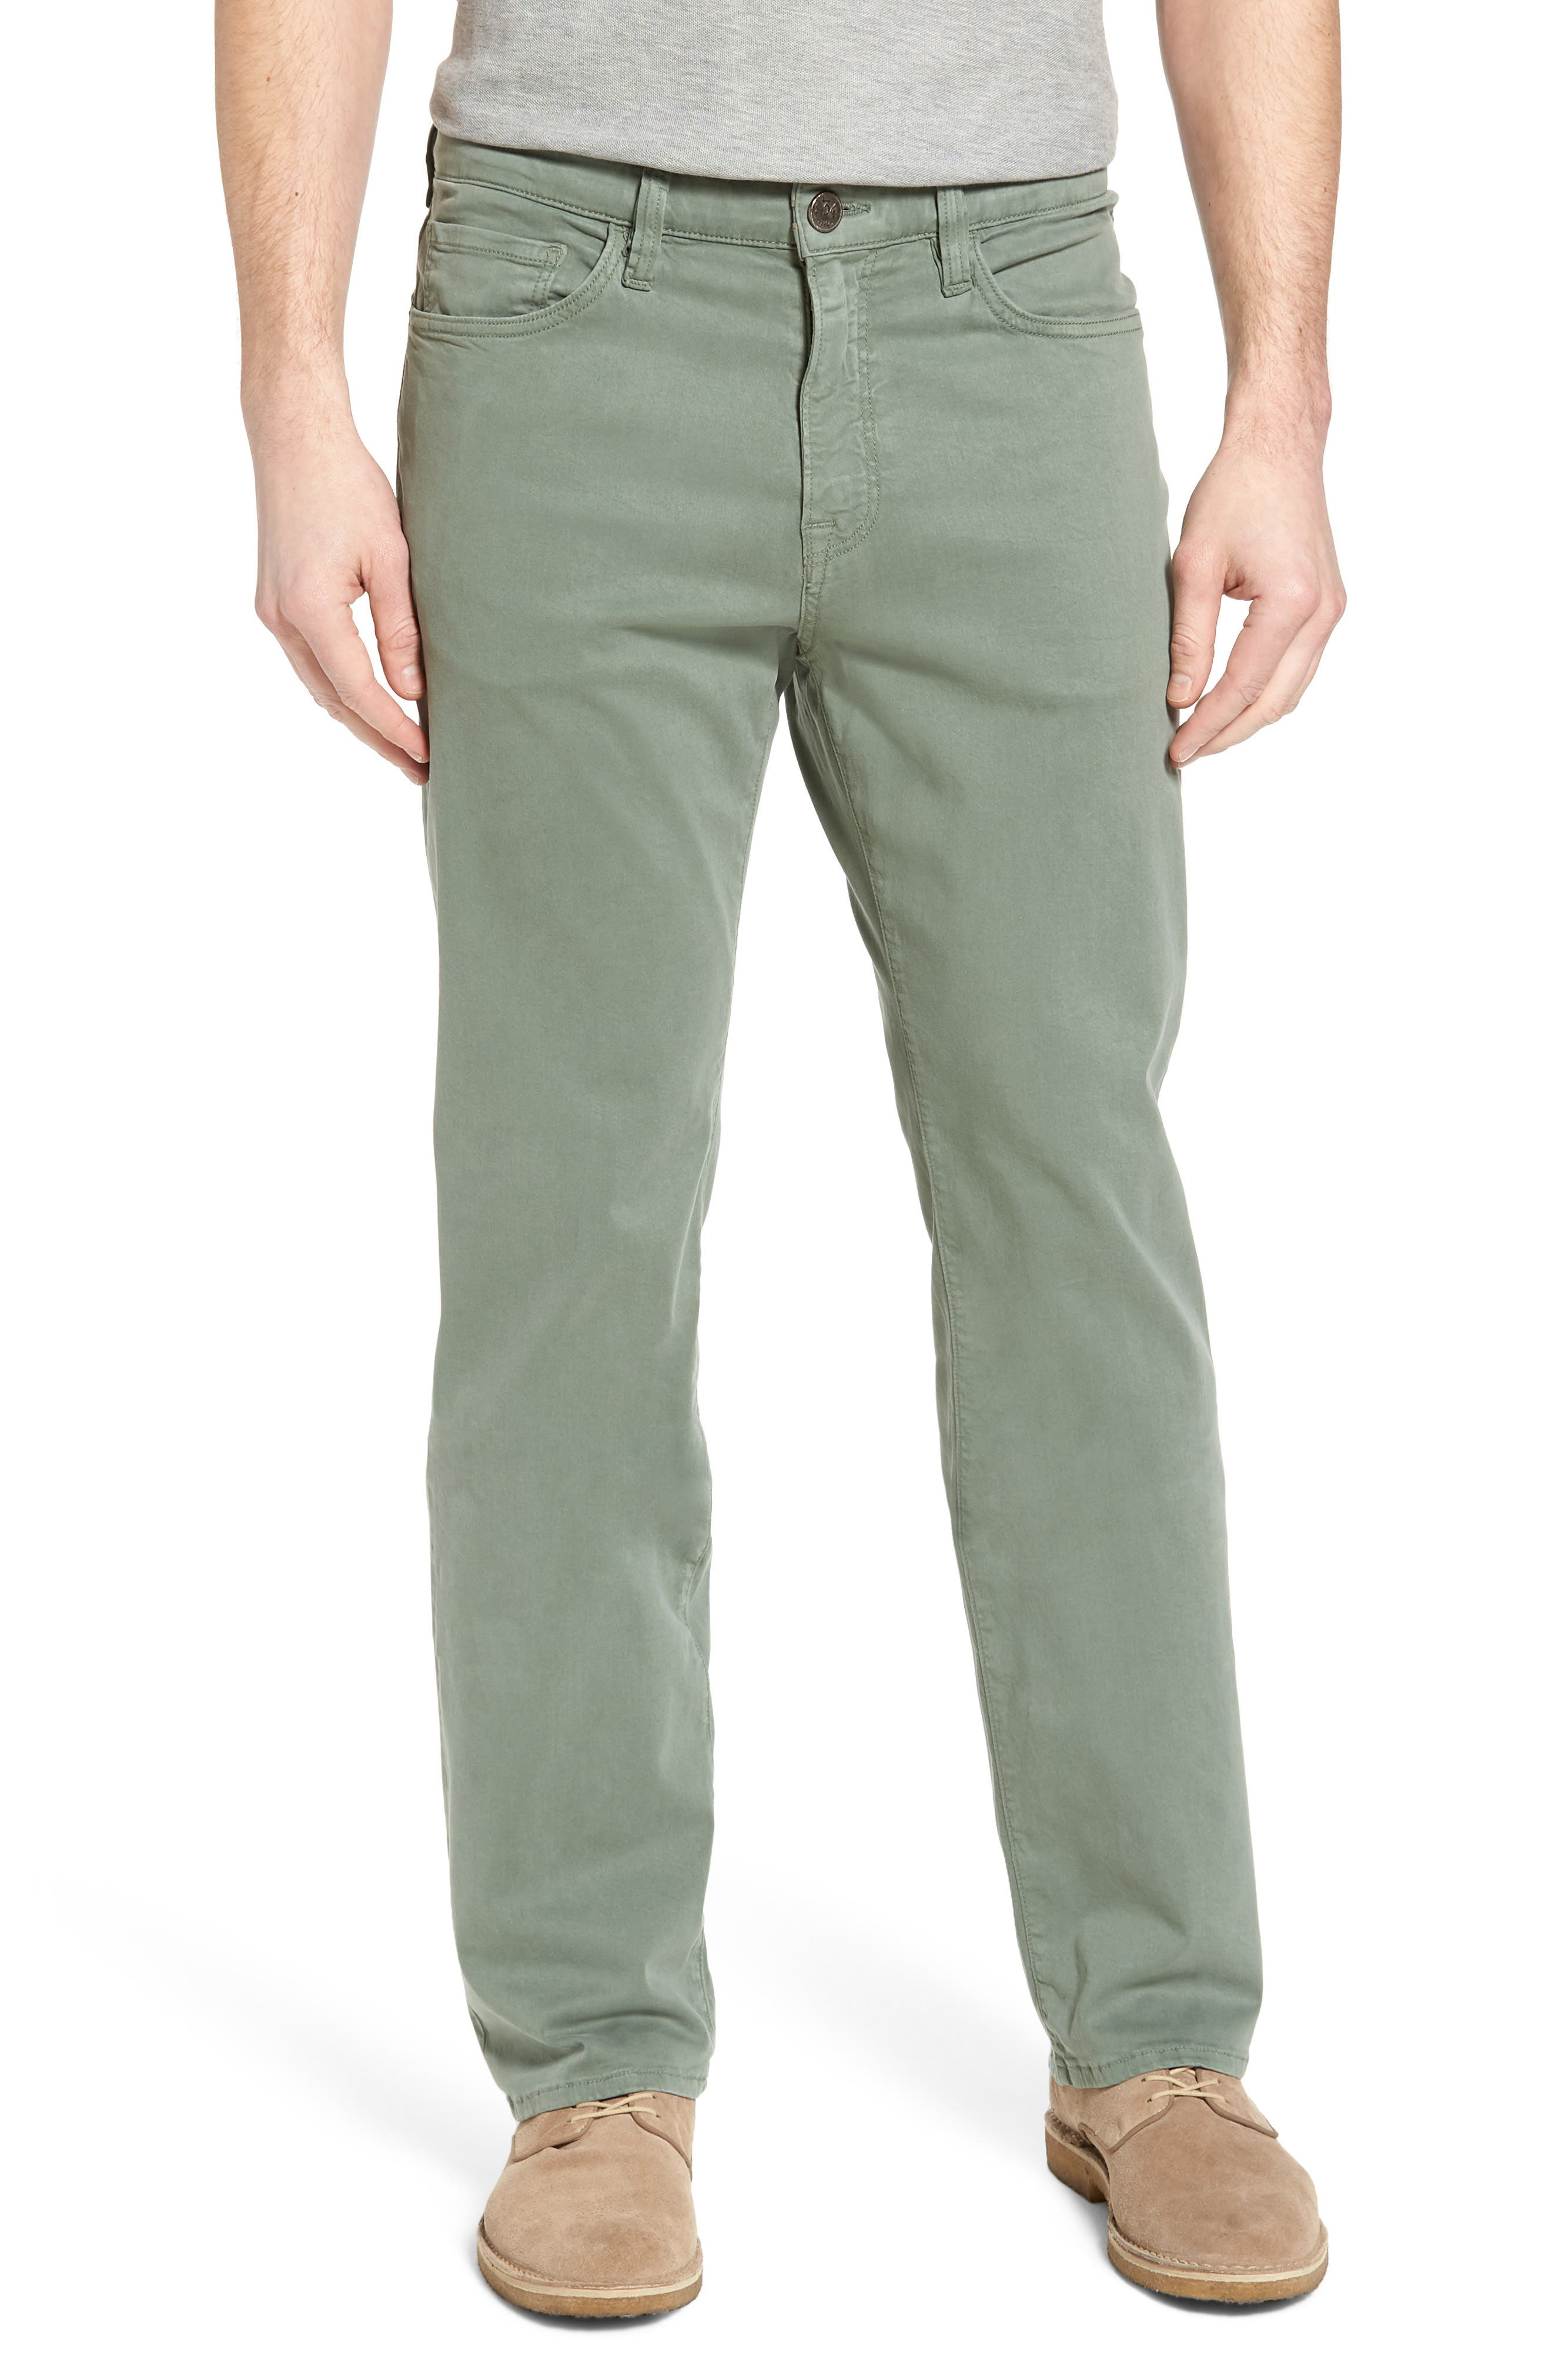 34 HERITAGE,                             Charisma Relaxed Fit Twill Pants,                             Main thumbnail 1, color,                             MOSS TWILL